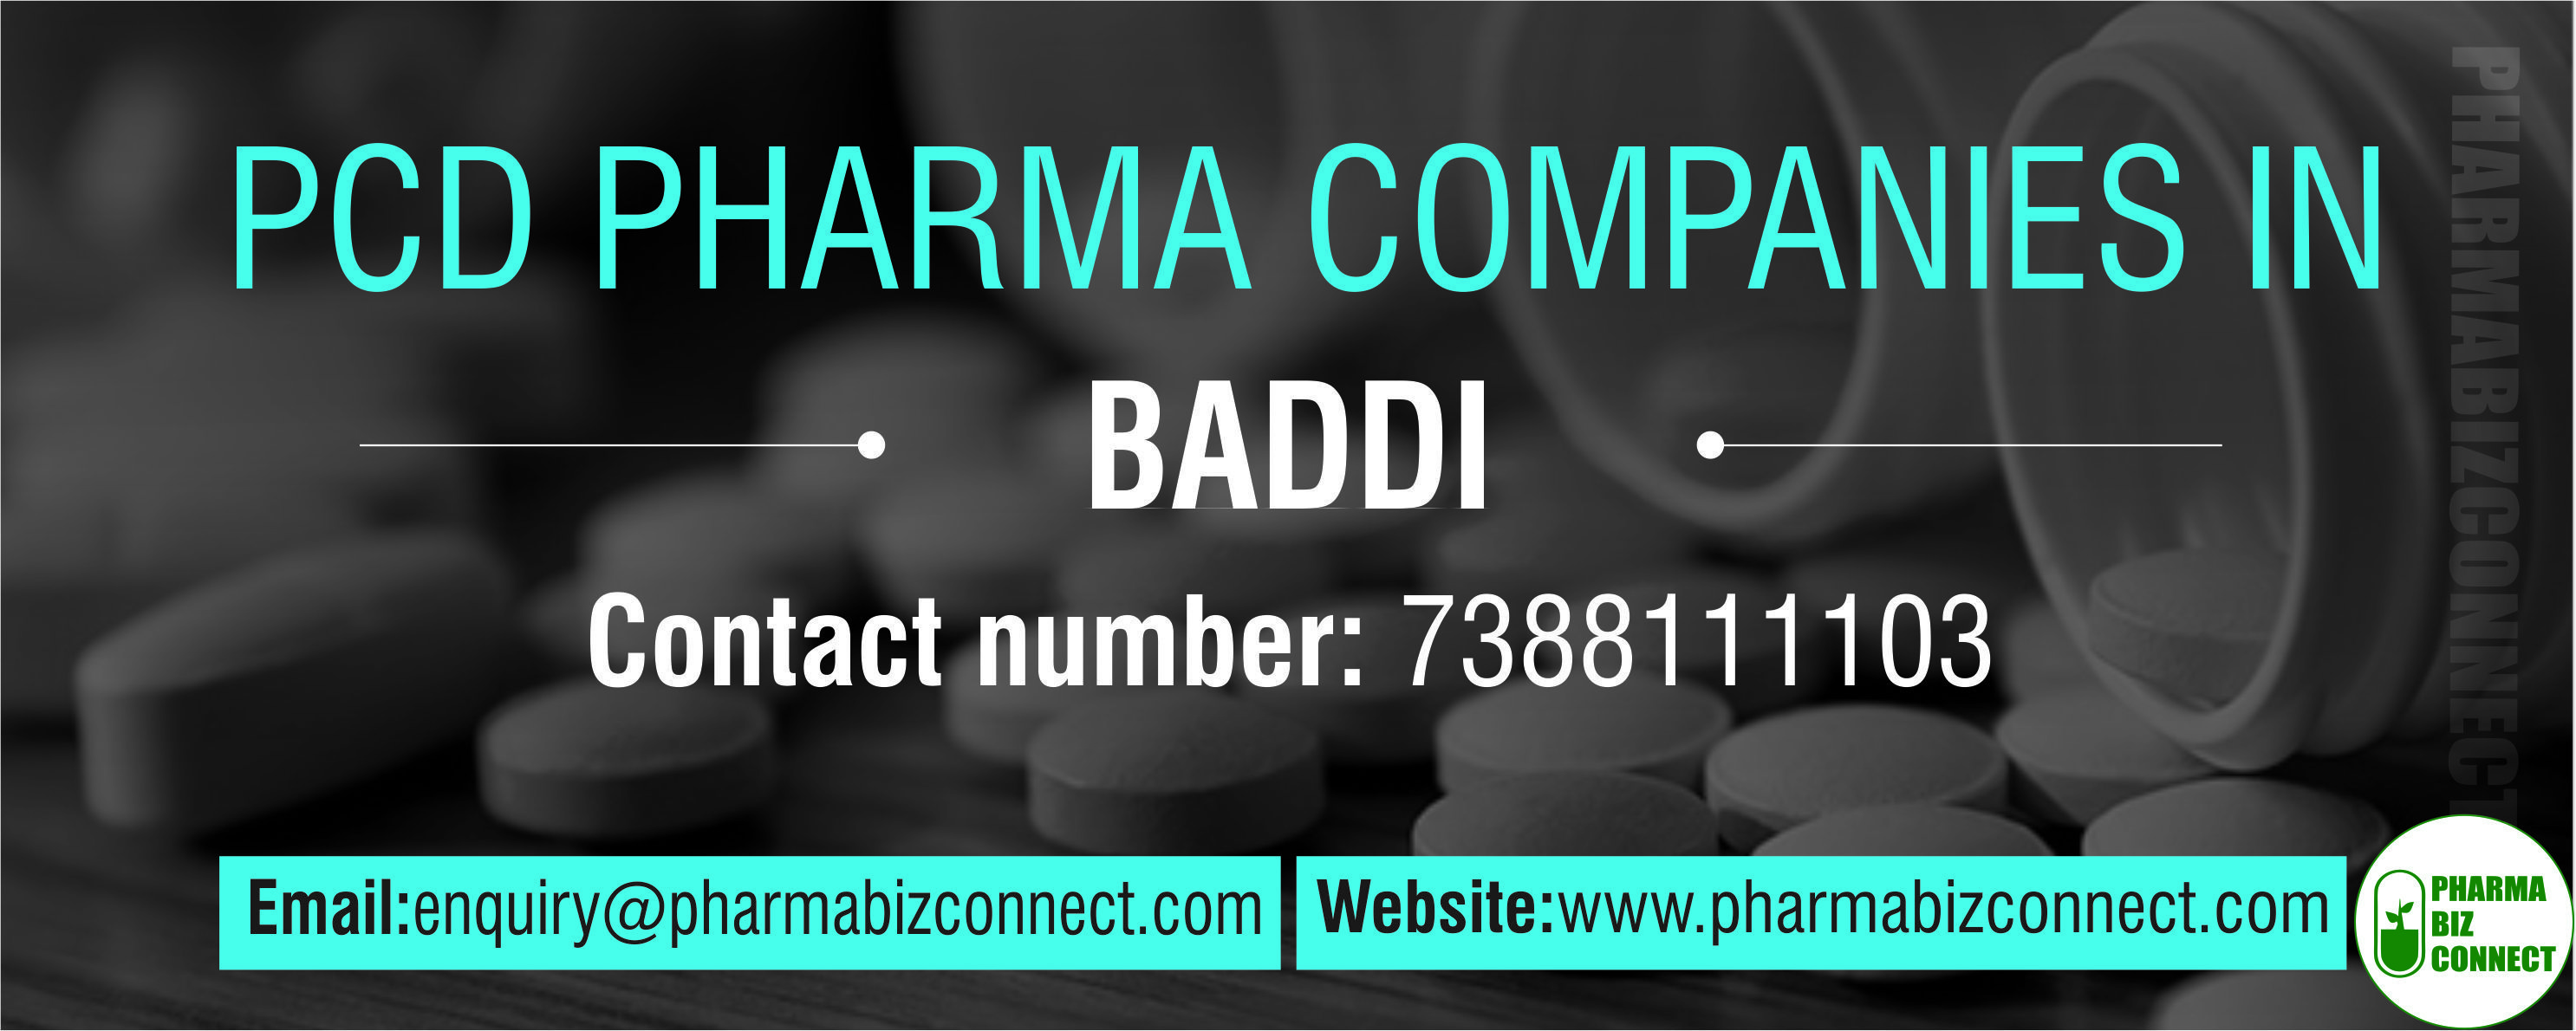 PharmaBizConnect provides the opportunity to connect with various